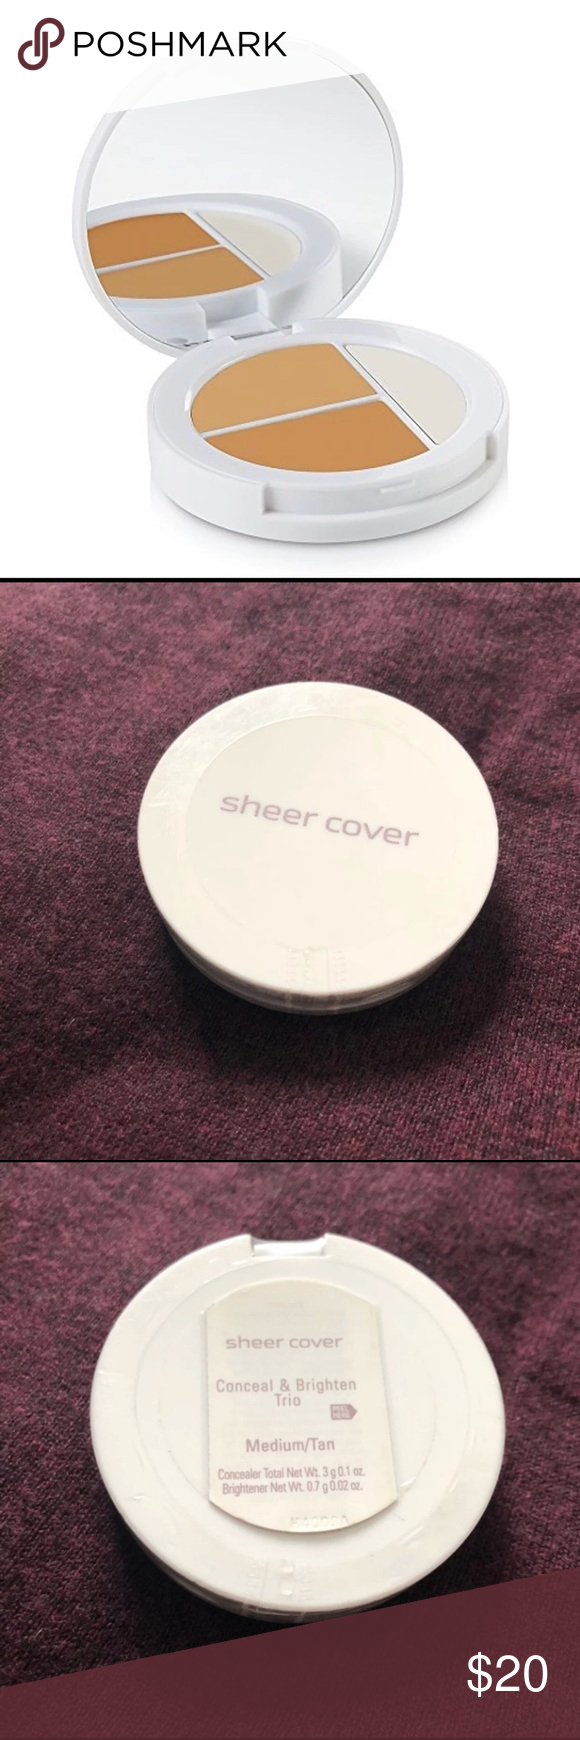 Sheer Cover Mineral Makeup Concealer new NWT Minerals